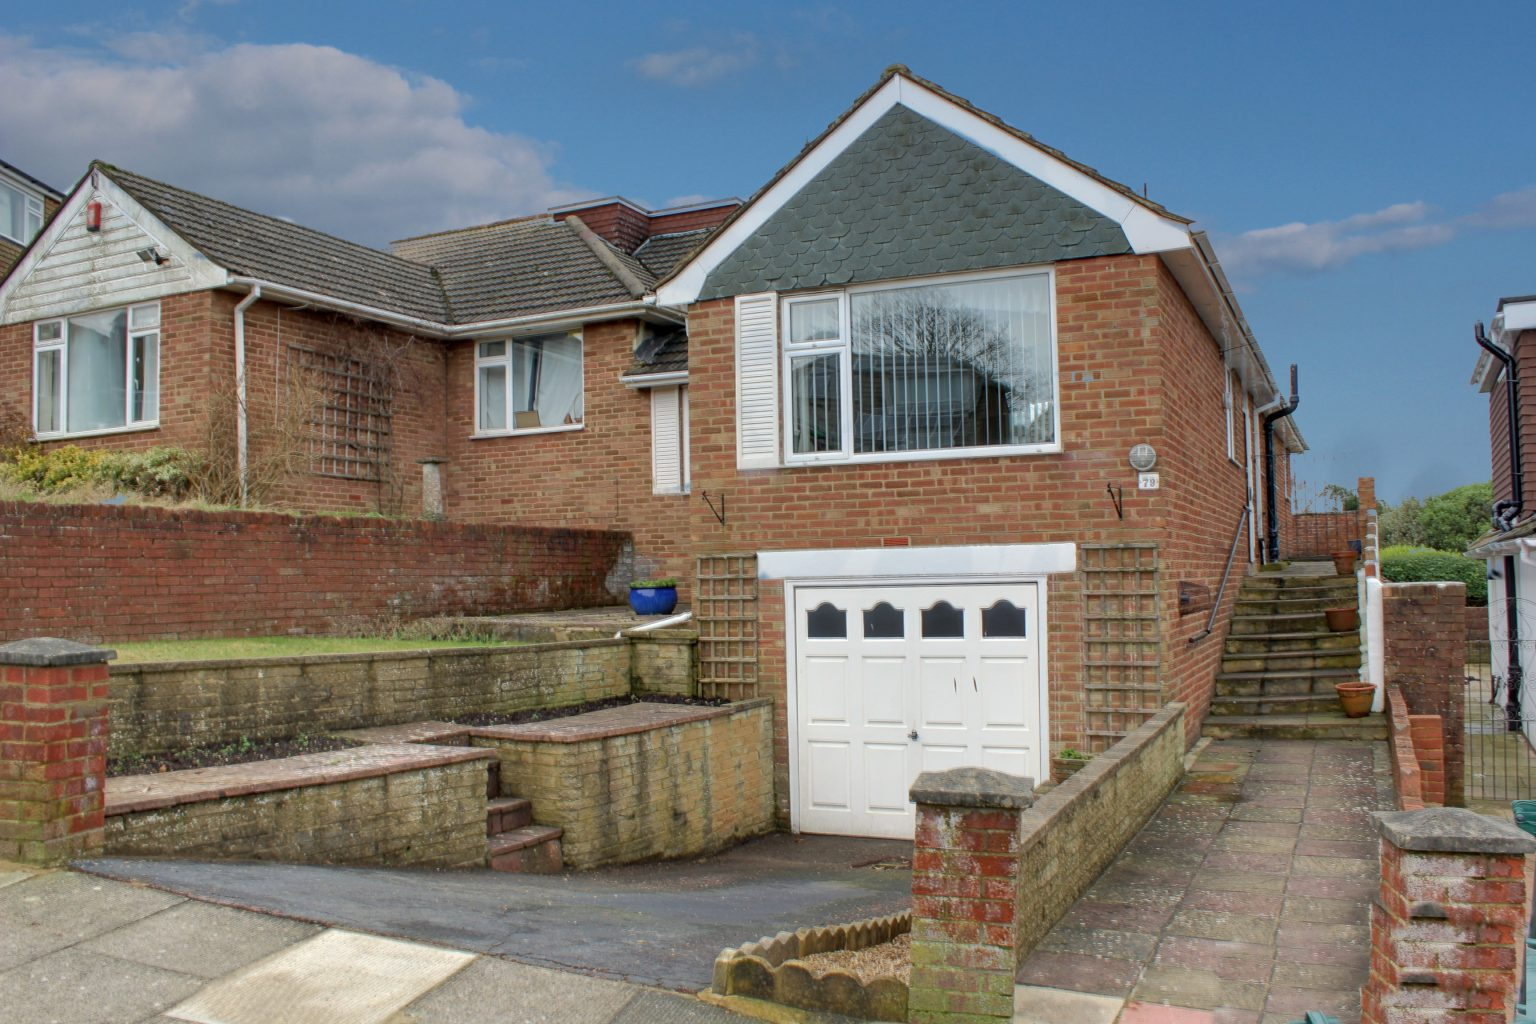 Image of the outside of a bungalow in Woodingdean | Open House Estate Agents Woodingdean